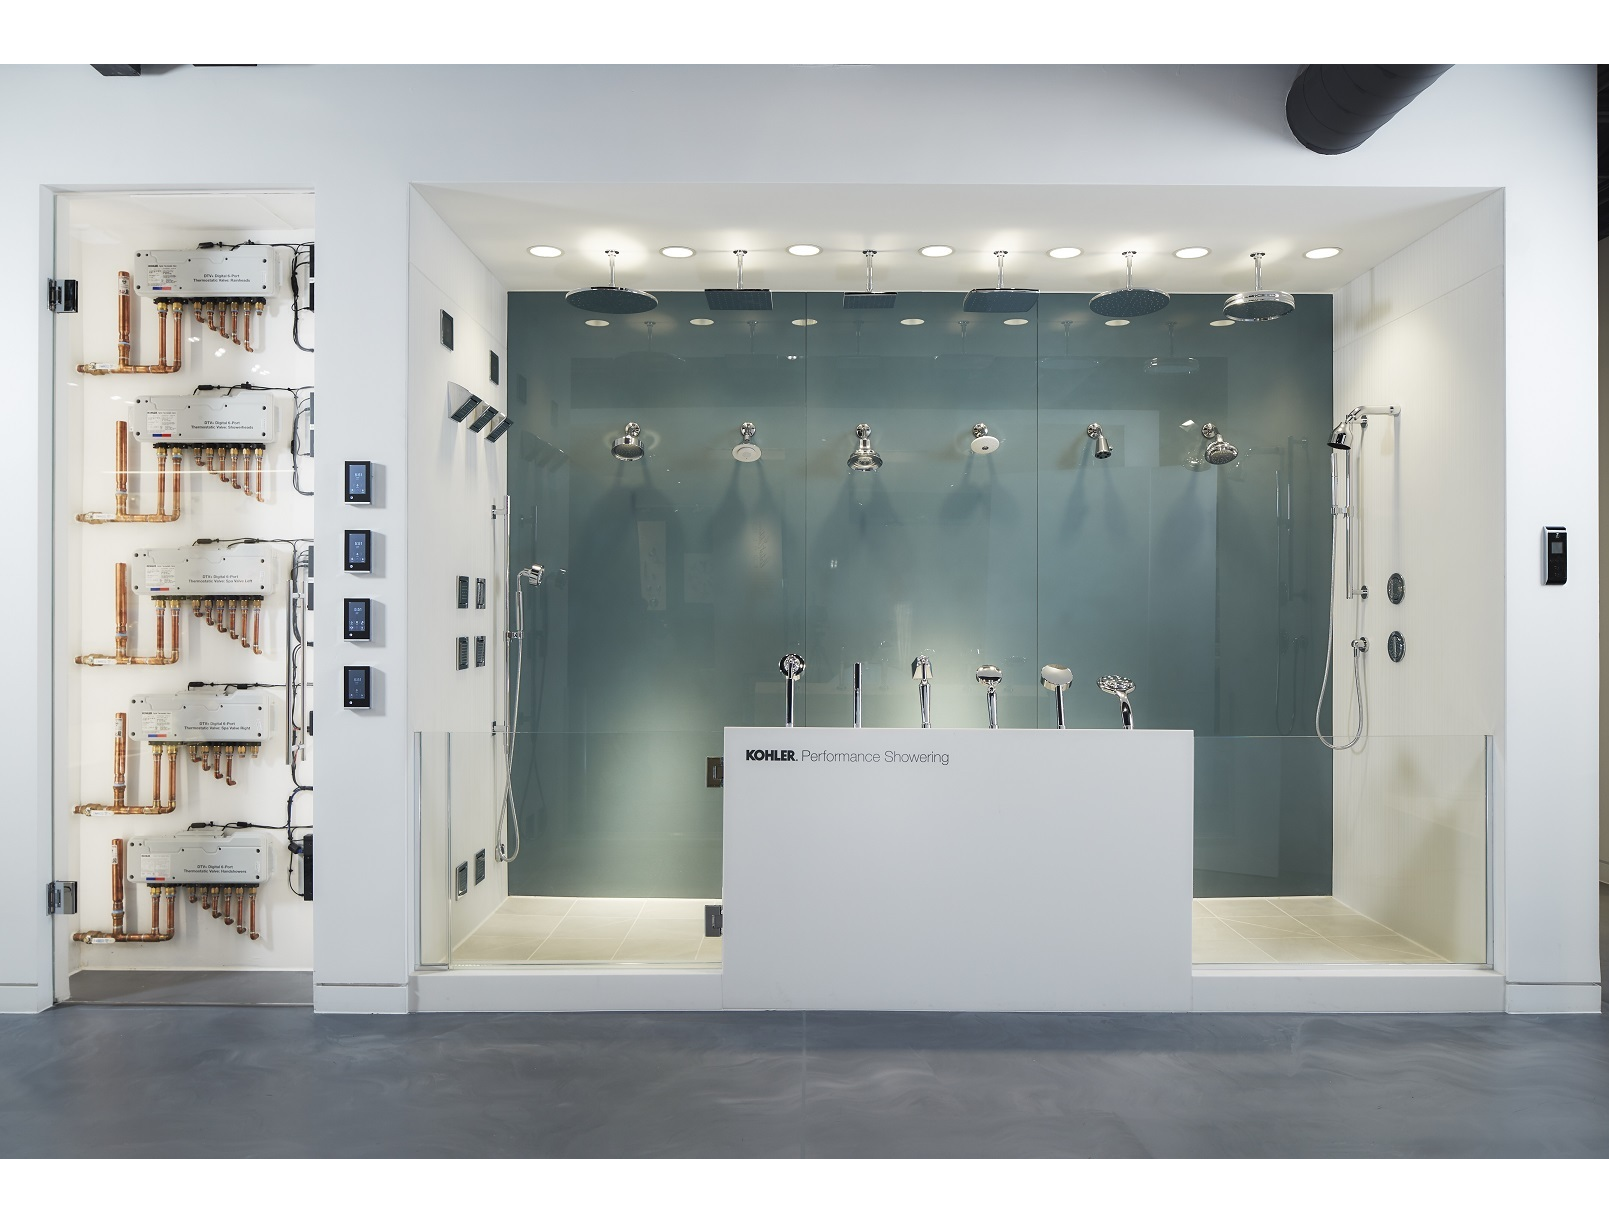 KOHLER Signature Store by First Supply